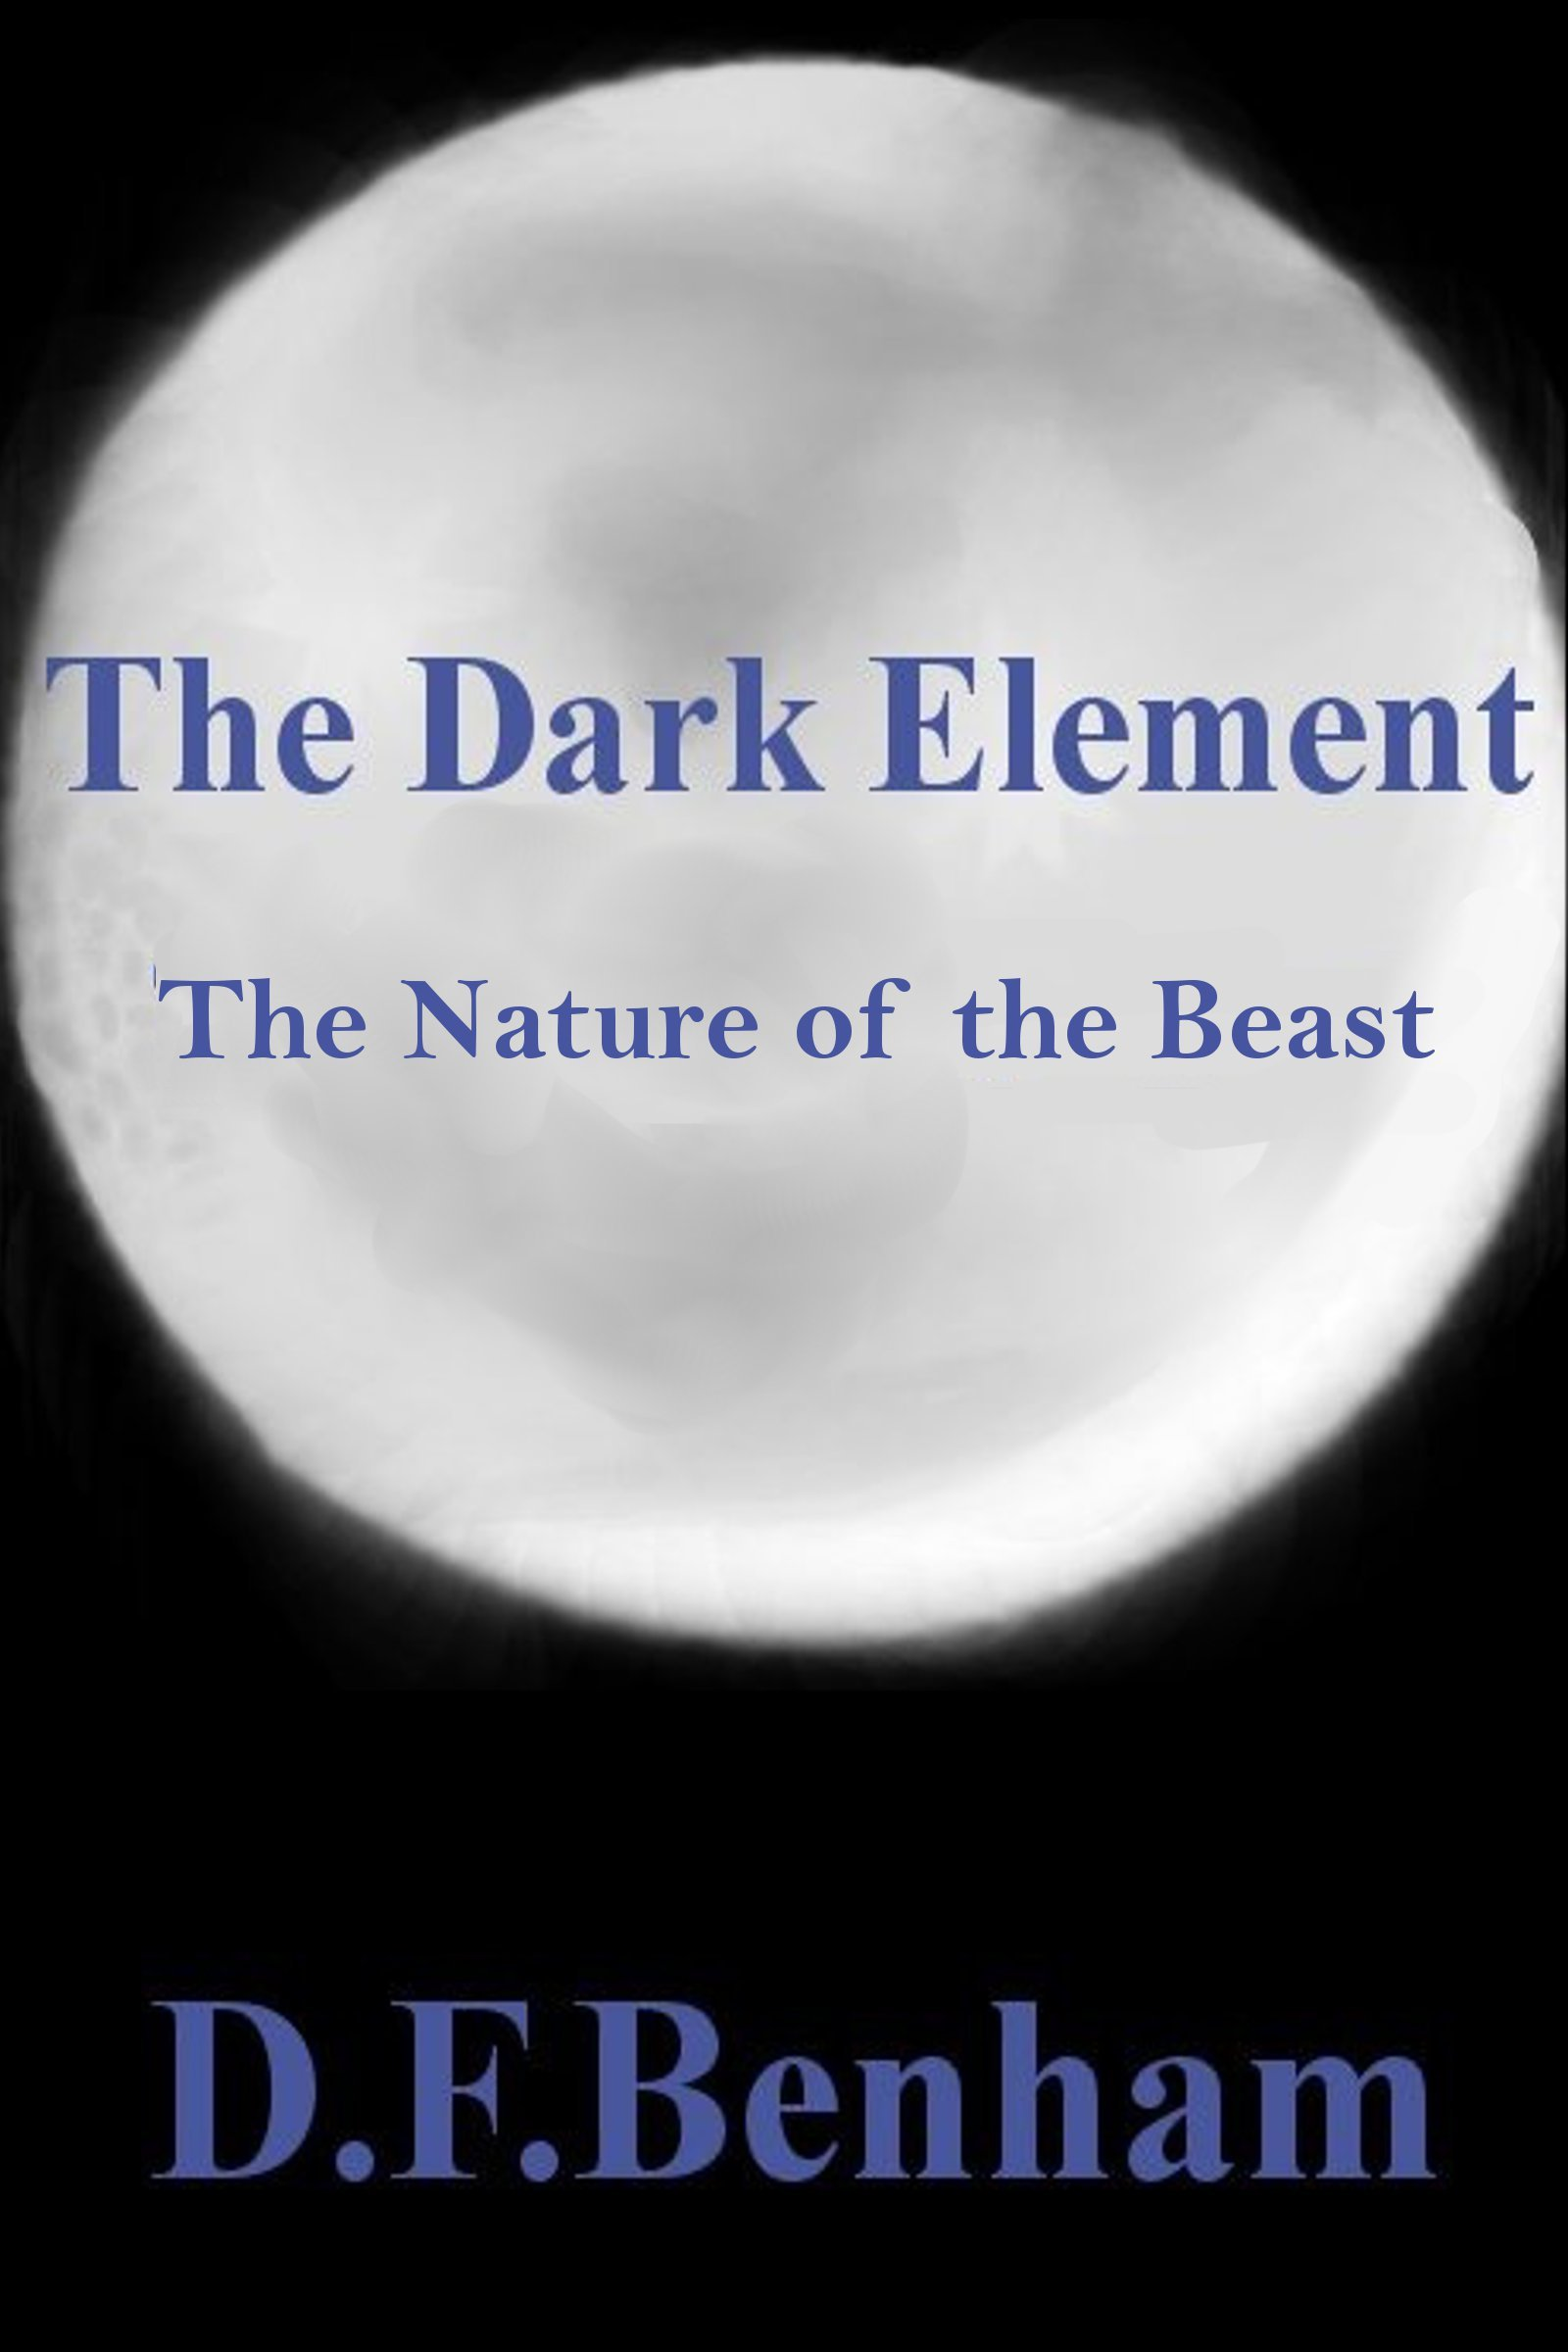 The Dark Element: The Nature of the Beast